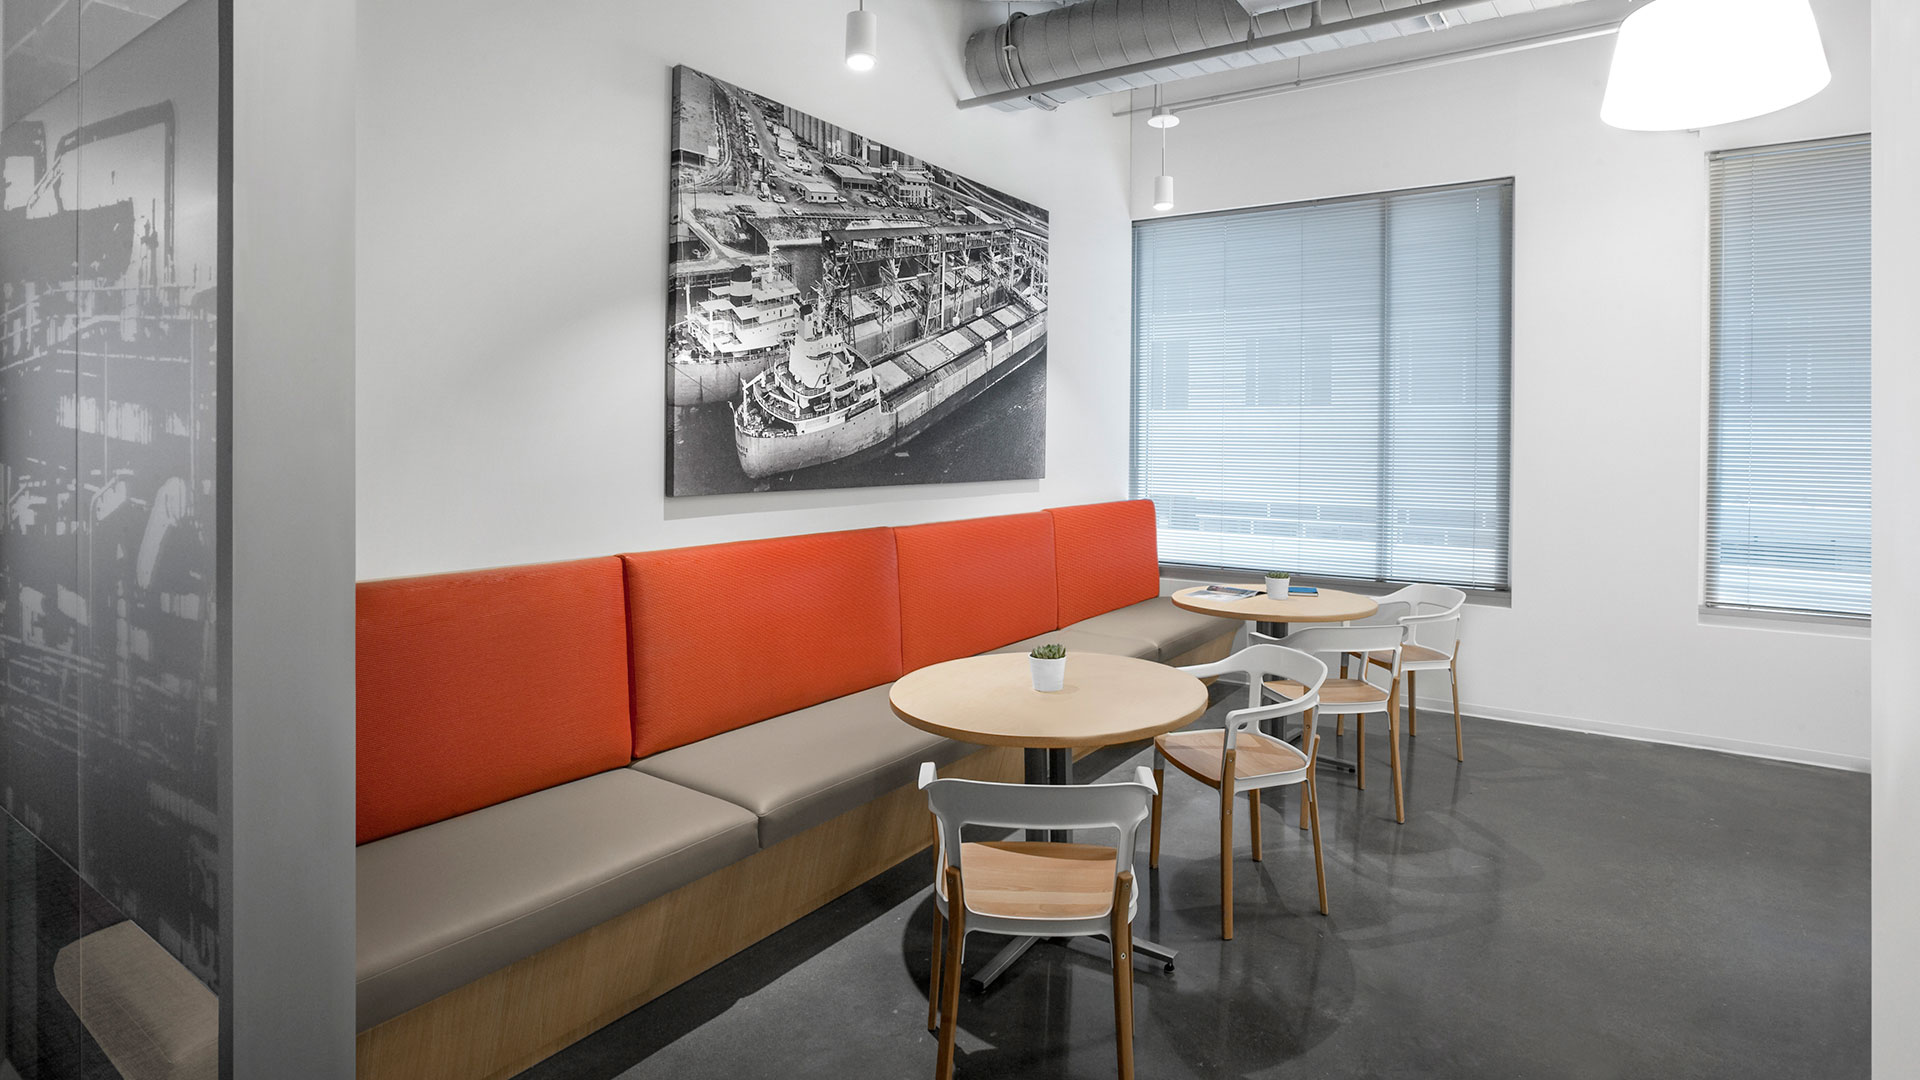 Corporate Interior Design City Center Houston Breakroom Banquette Seating Dining